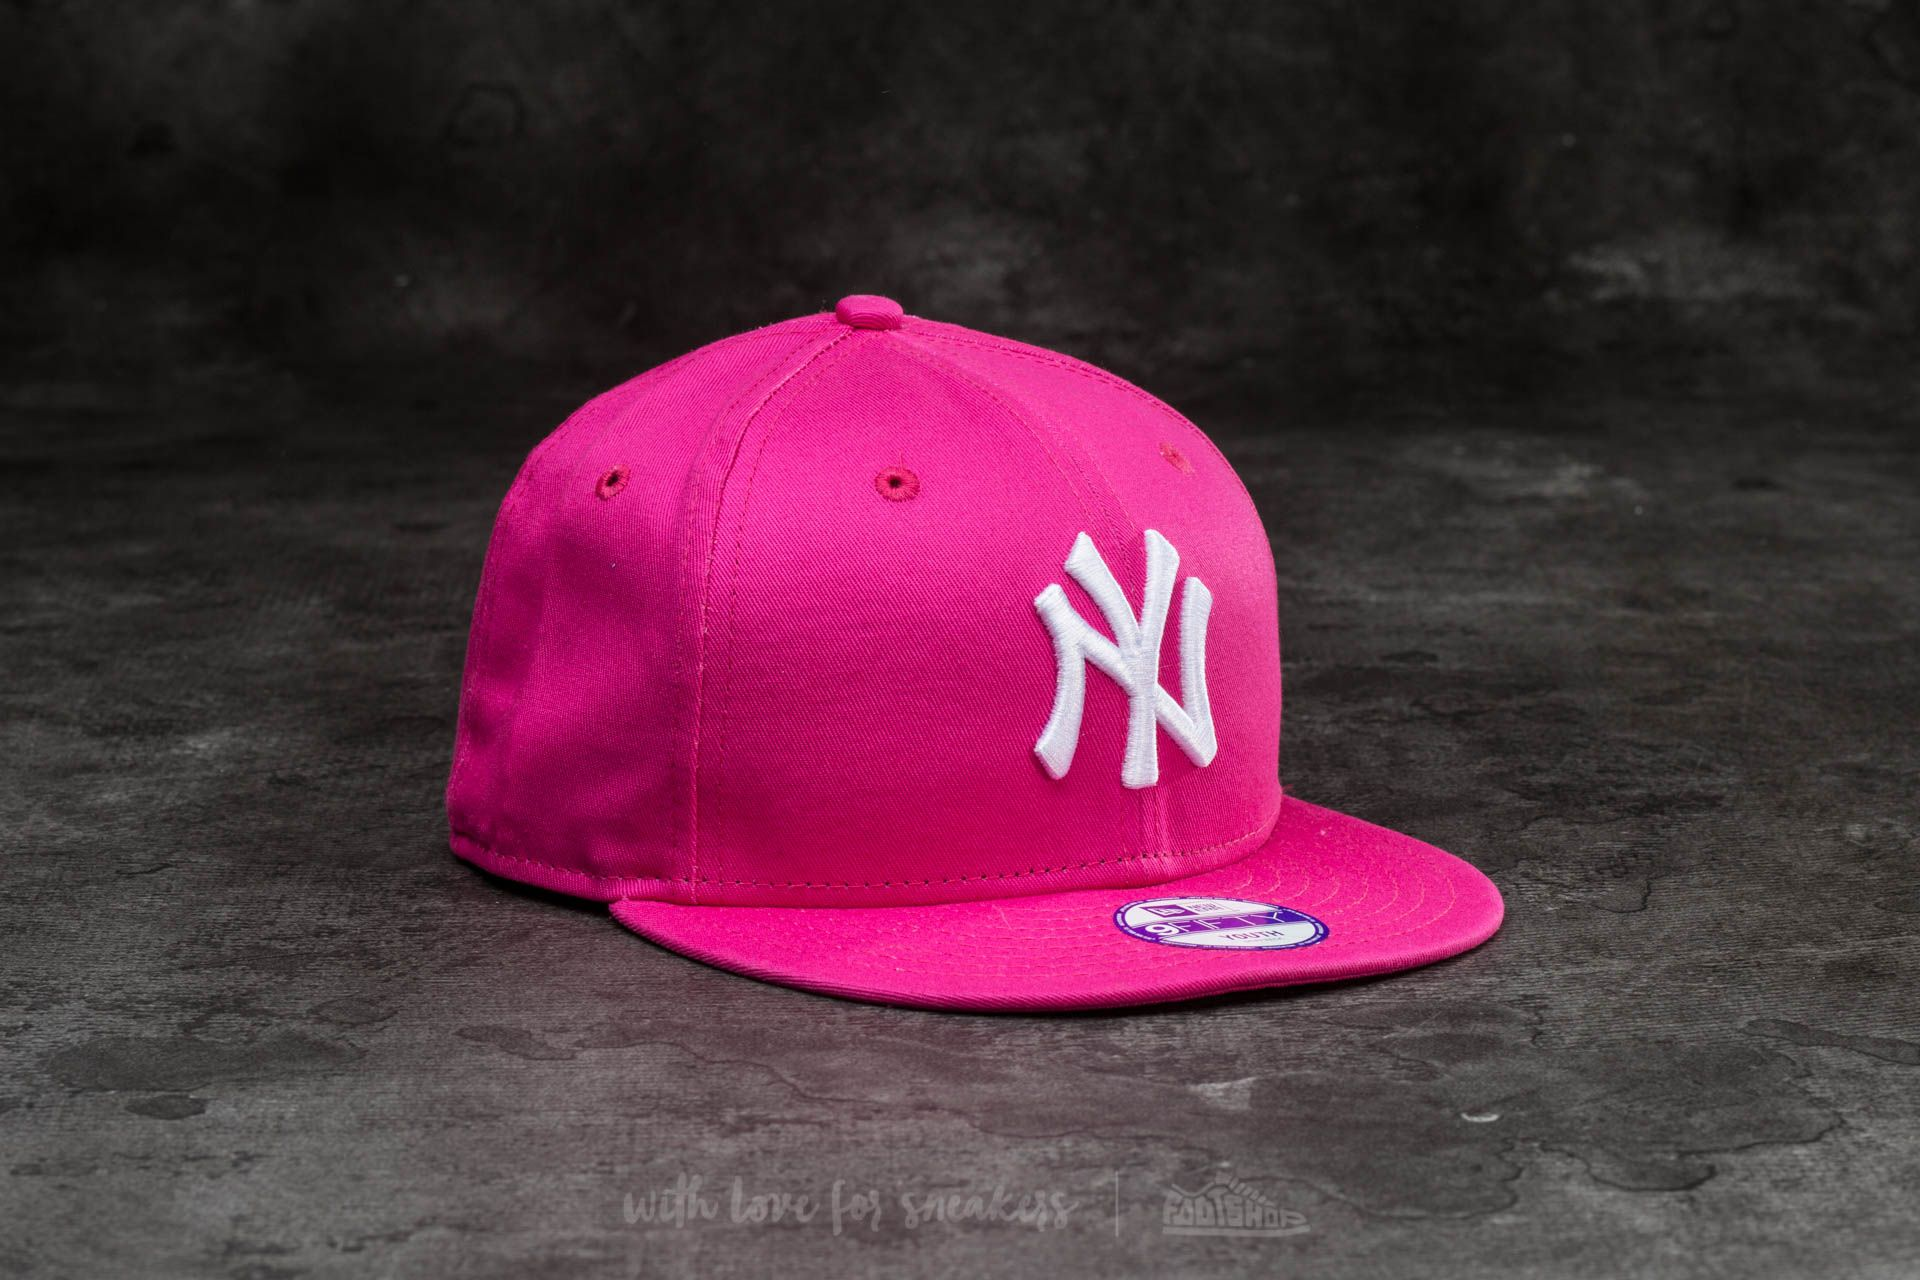 New Era 9Fifty Youth MLB Basic New York Yankees Cap Pink/ White Footshop – FR